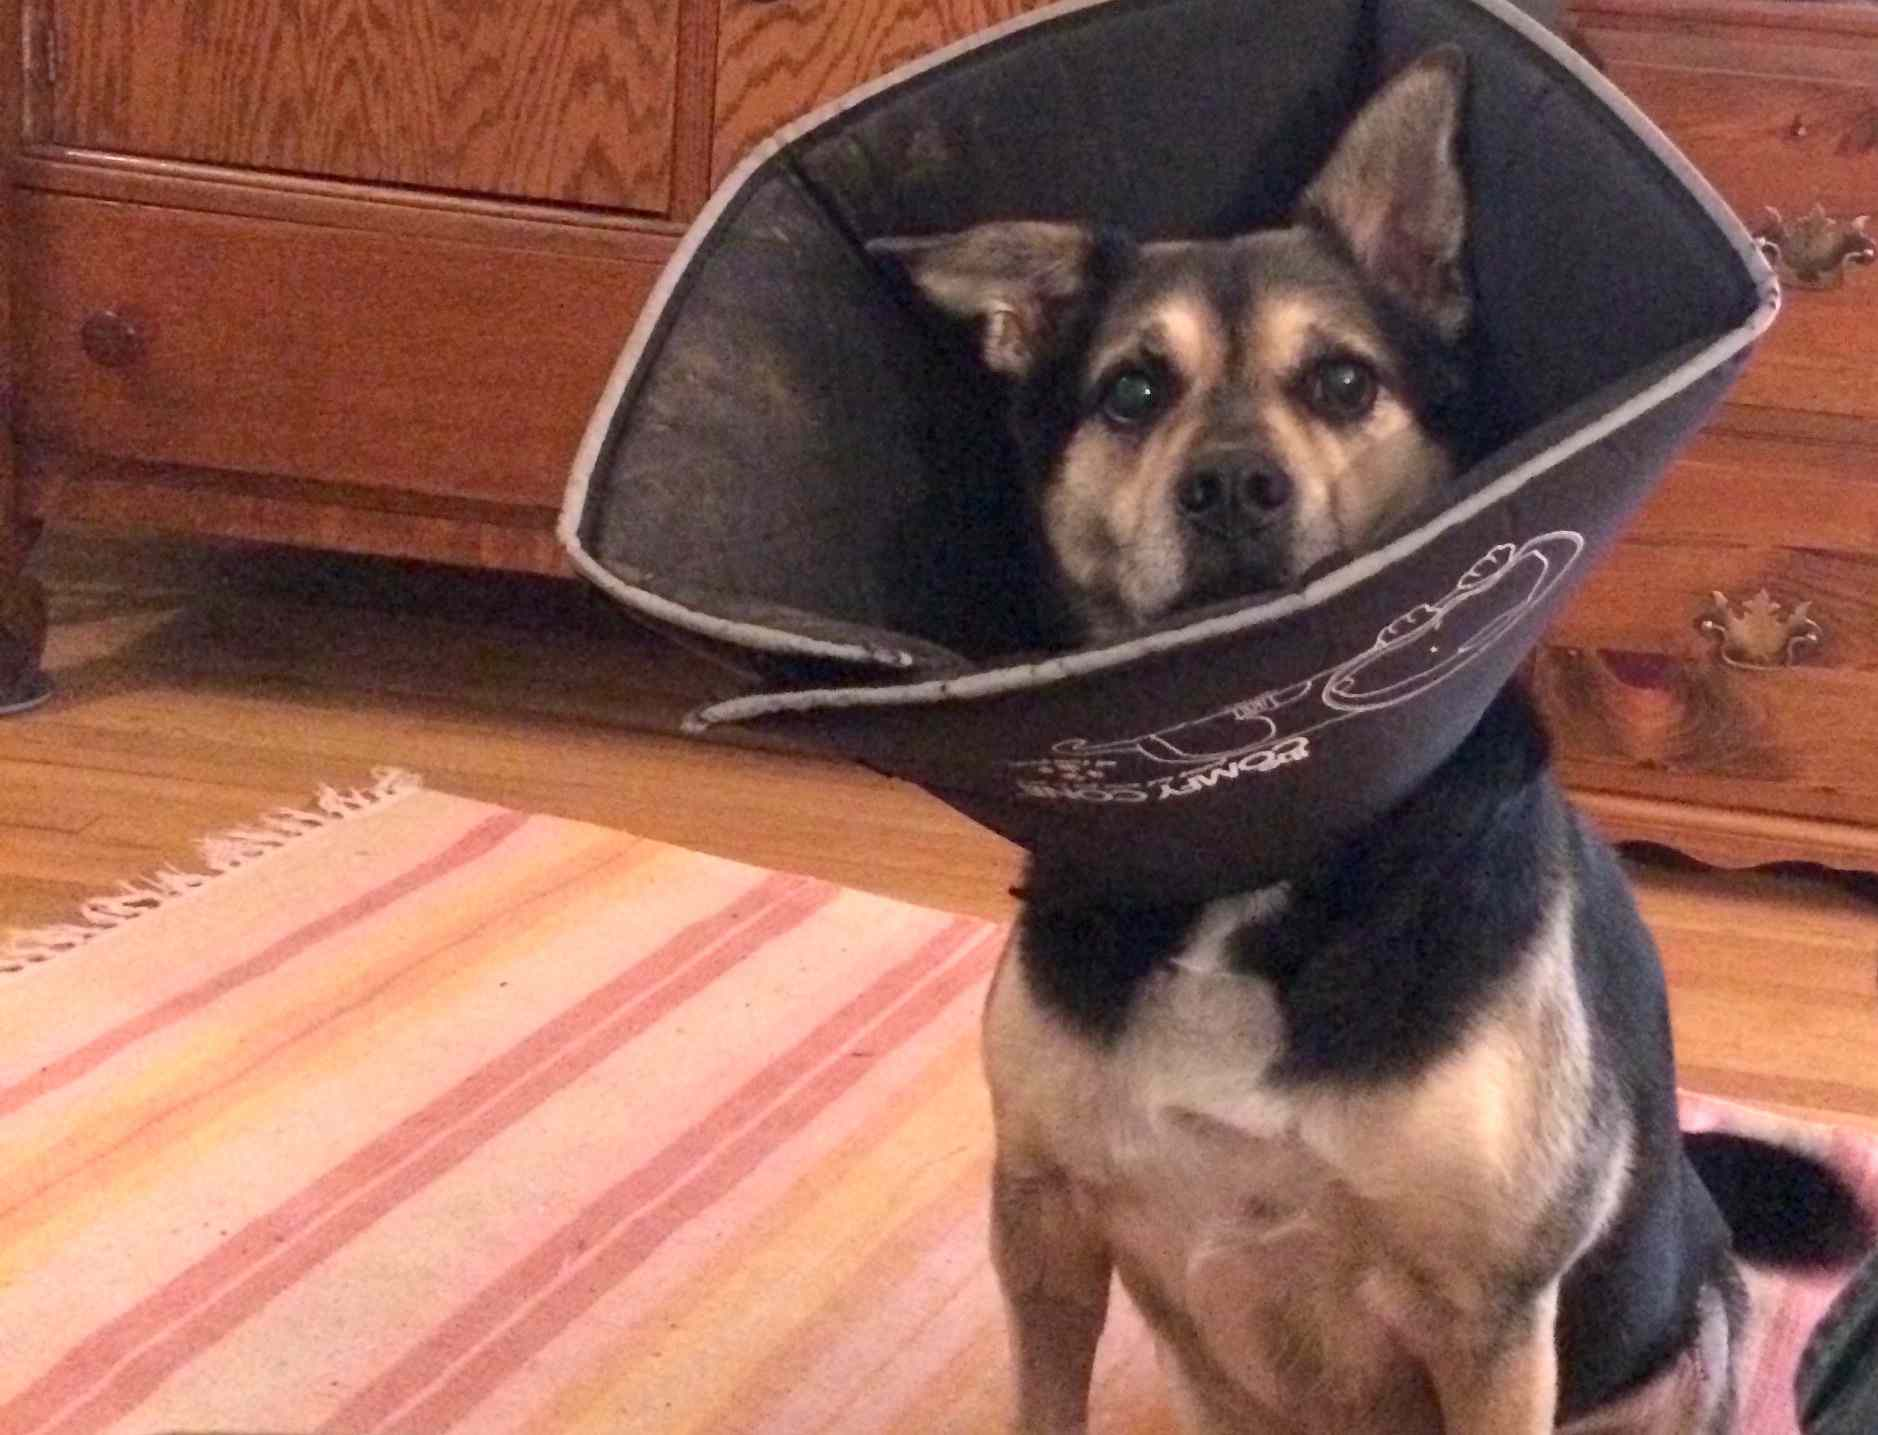 Otis, a mixed-breed rescue dog, wearing a cone